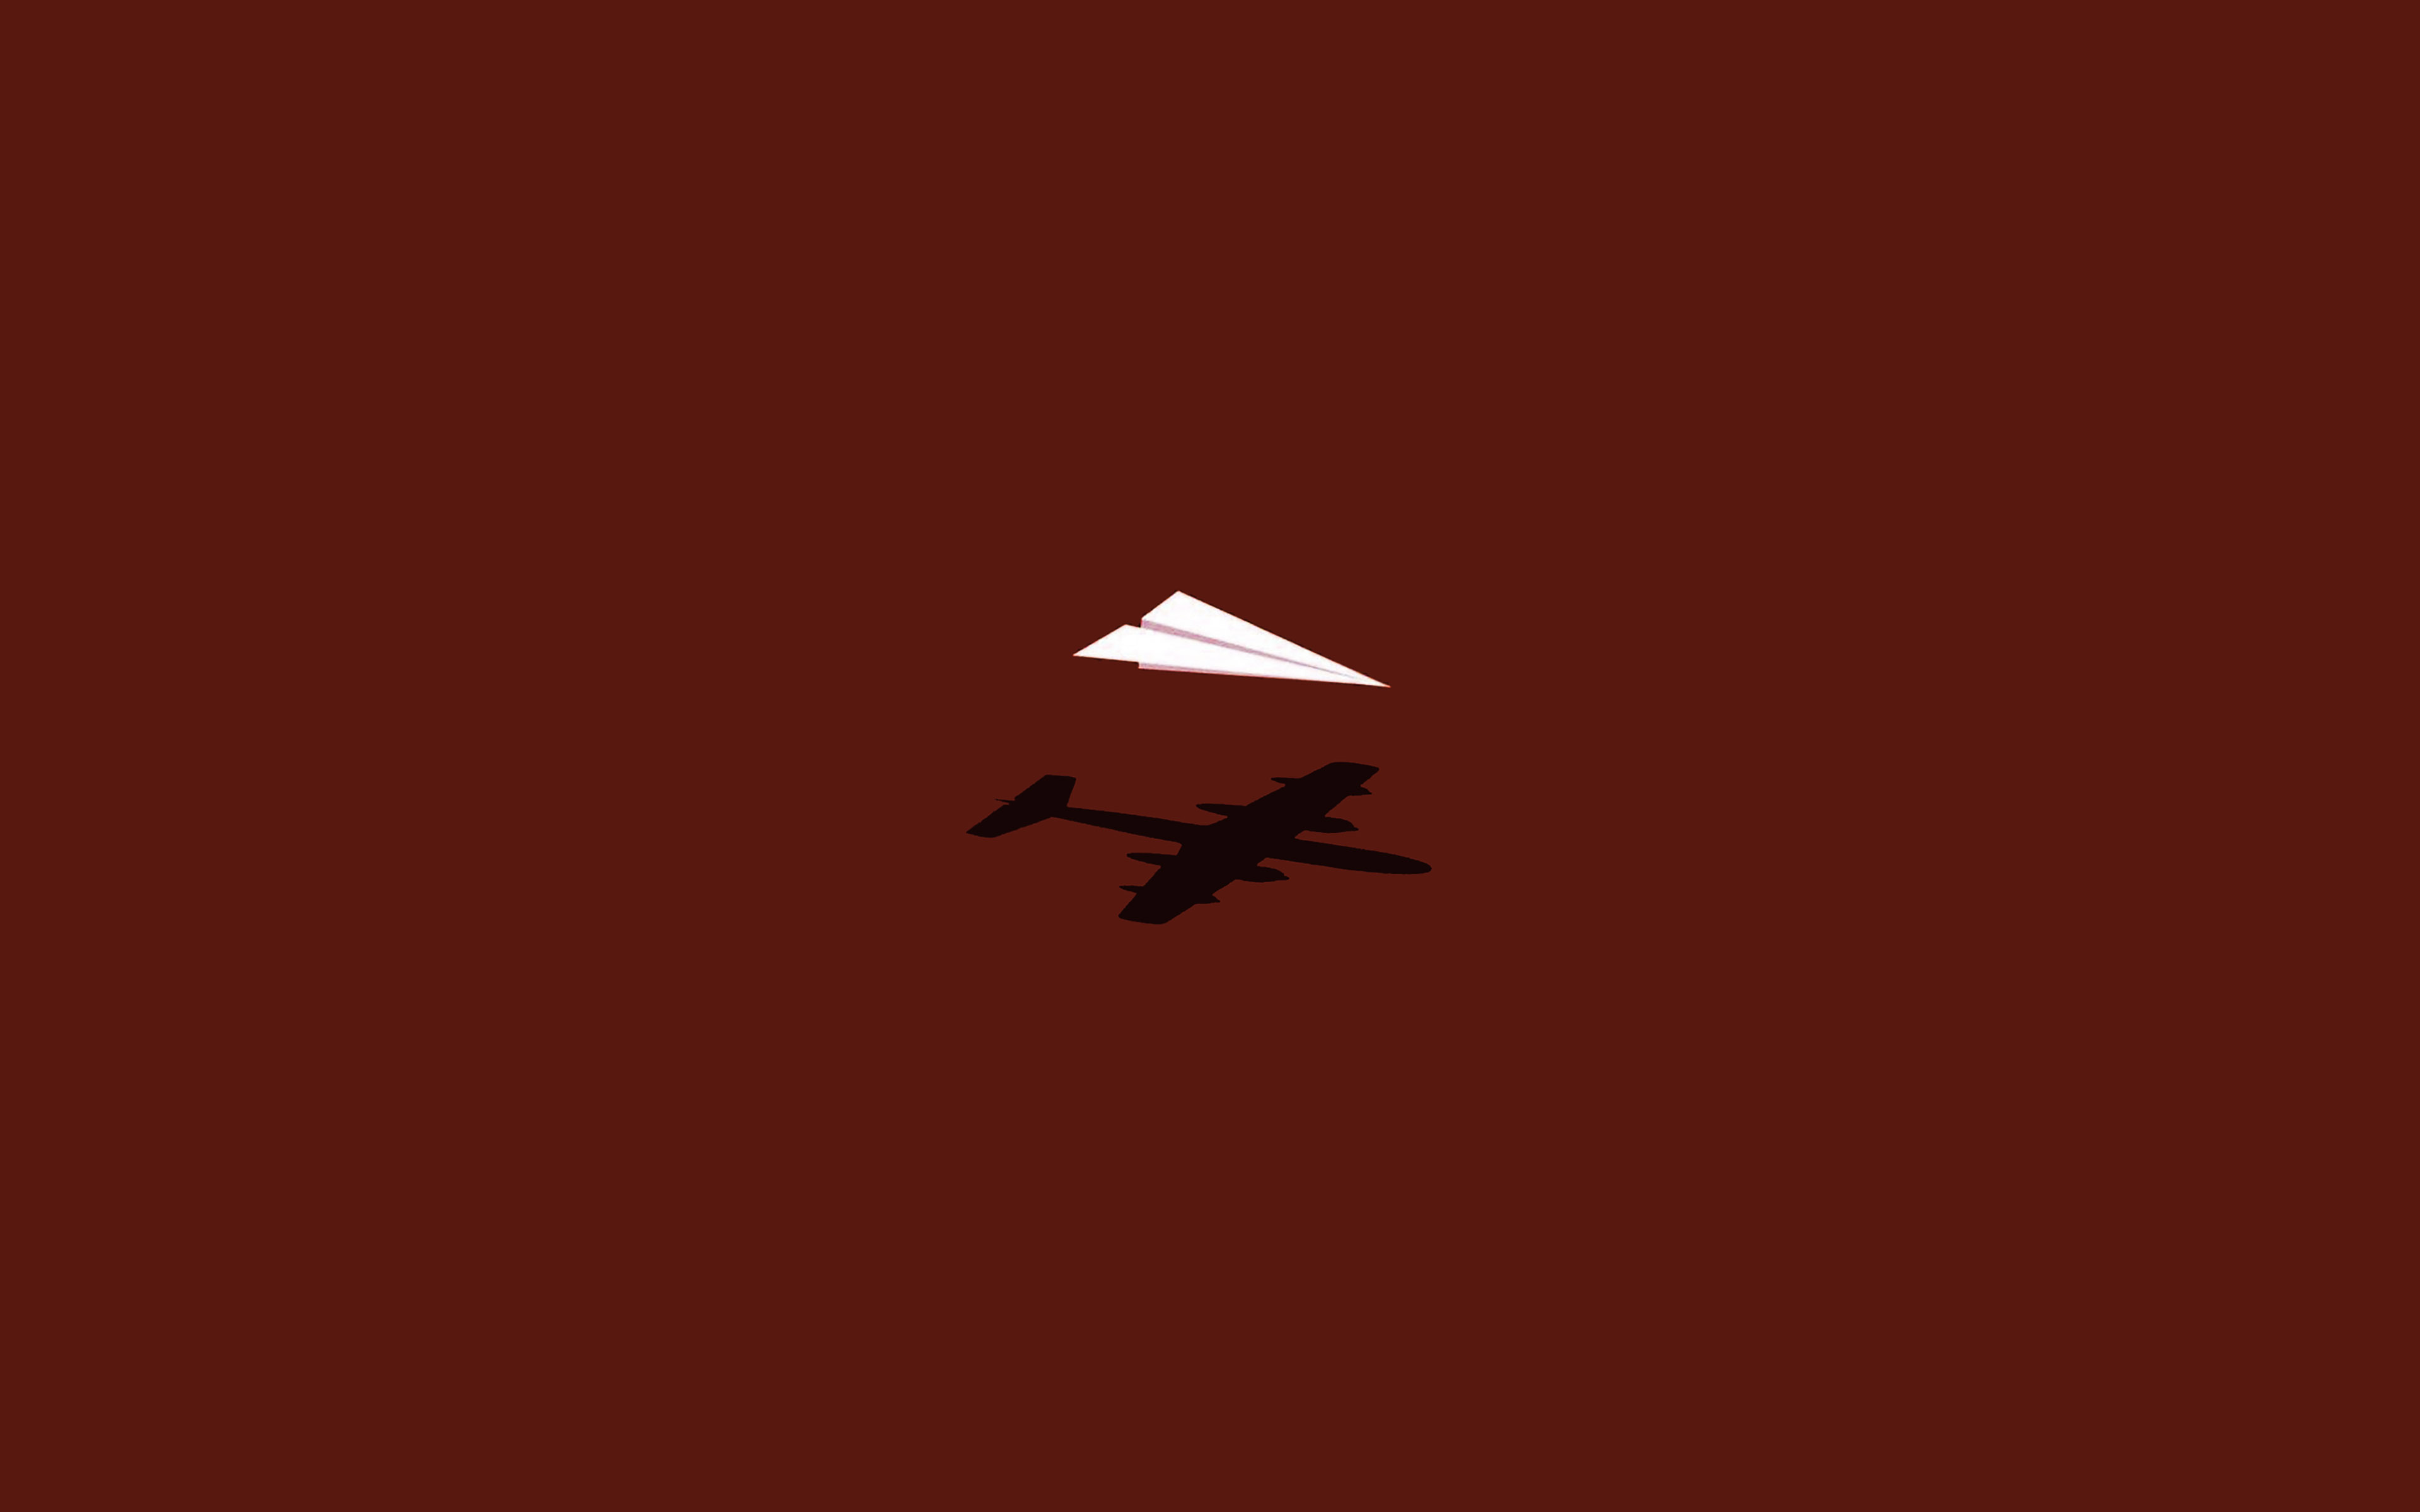 Fall Cellphone Wallpaper Af23 Rc Plane Minimal Red Art Illust Cute Papers Co